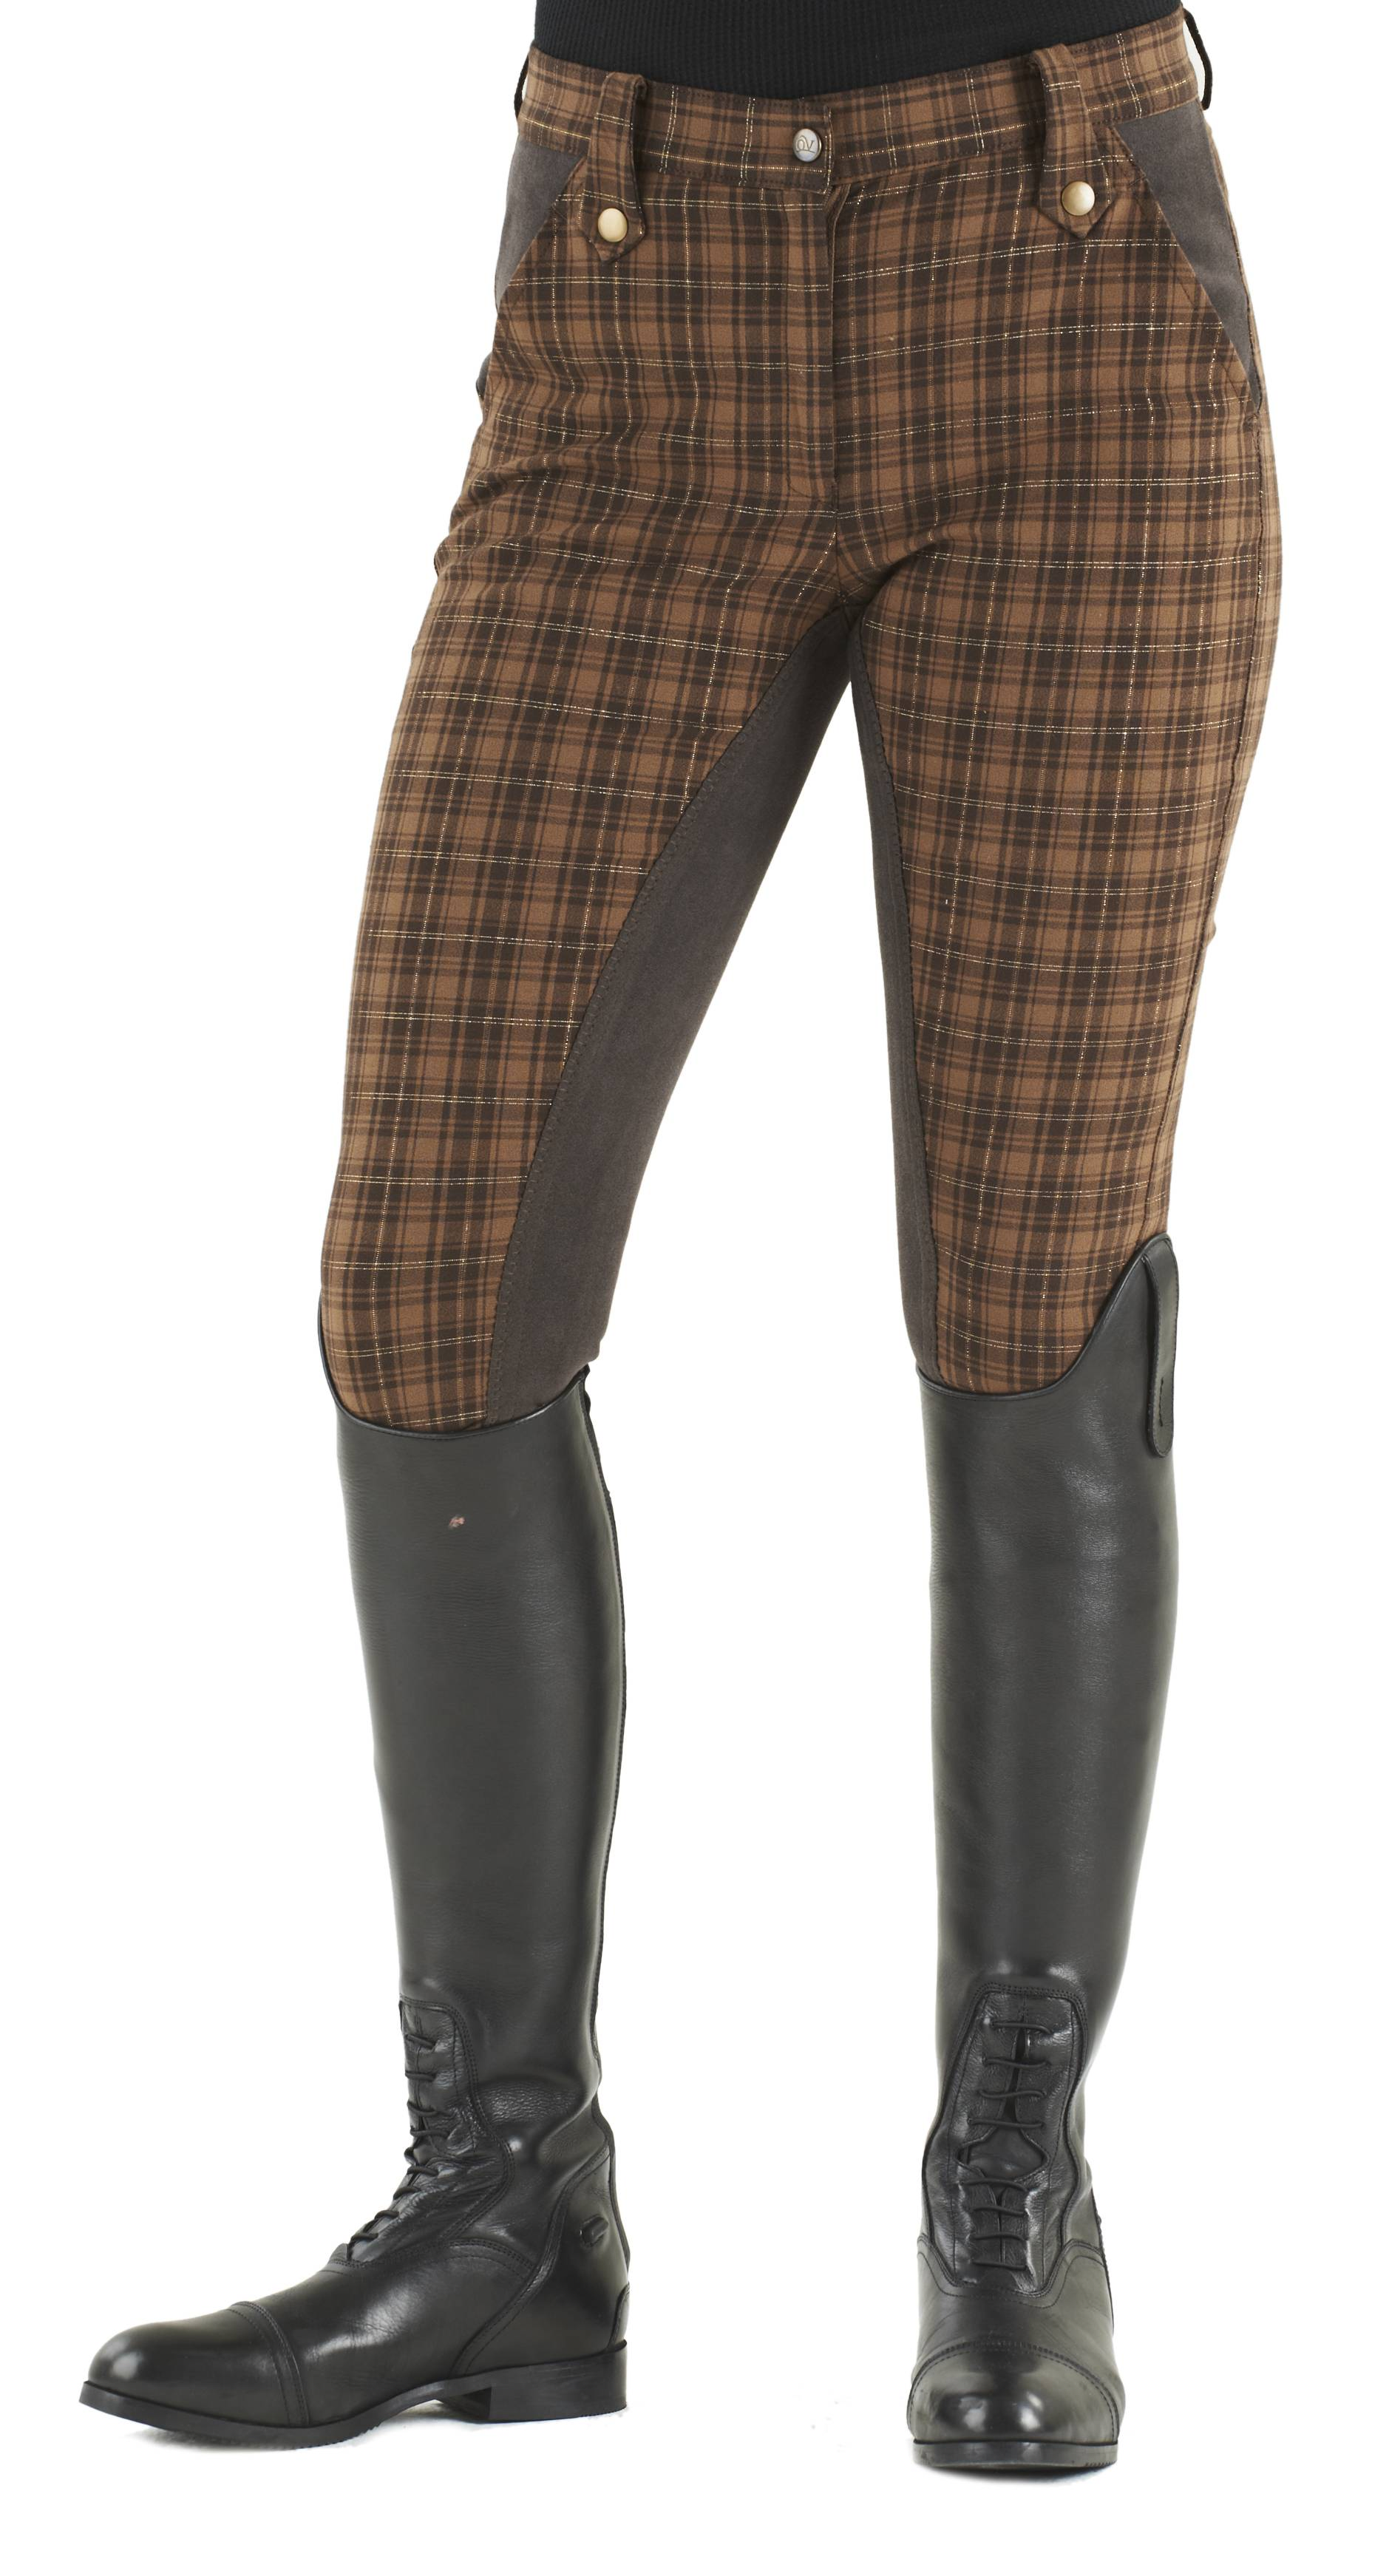 Ovation Sparkle Plaid Breeches - Ladies, Full Seat